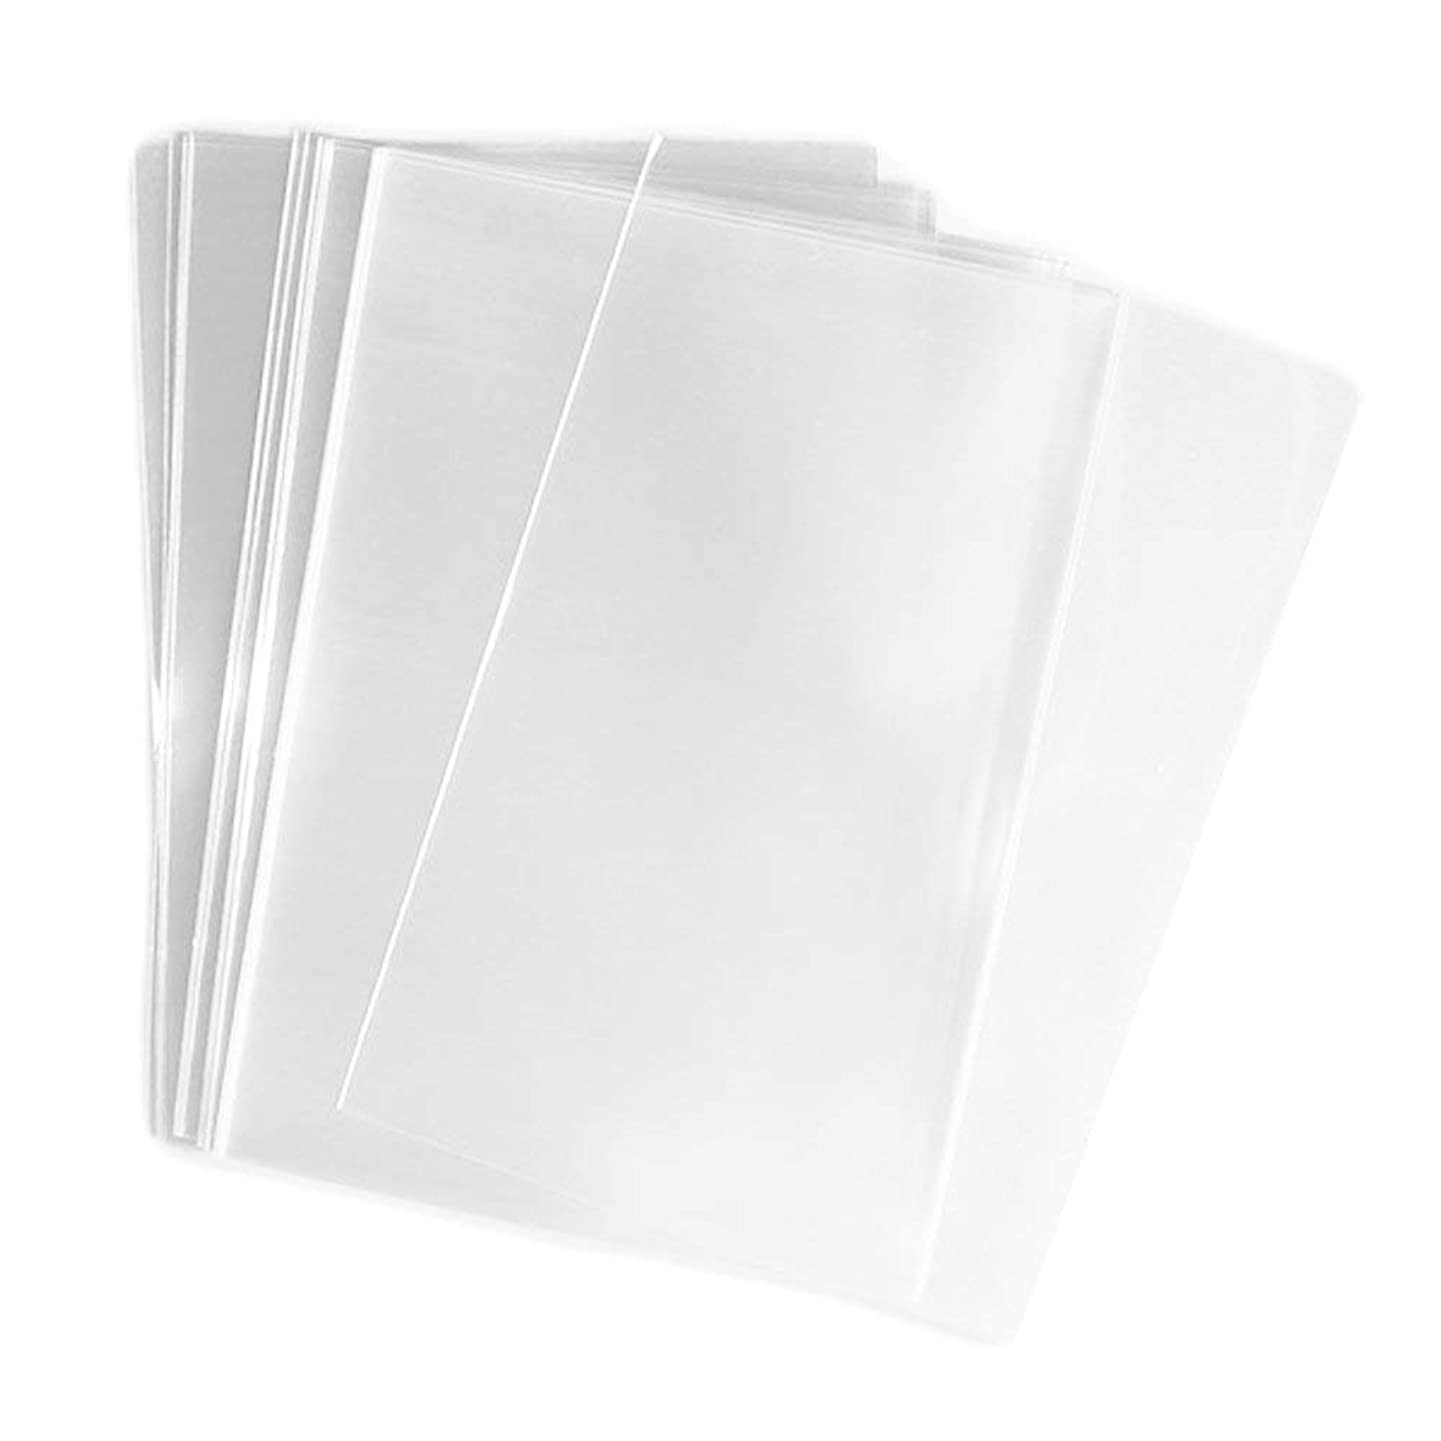 UNIQUEPACKING 100 Pcs 8 7/16 X 10 1/4 (O) Clear Flat Cello/Cellophane Bags Good for 8x10 Item